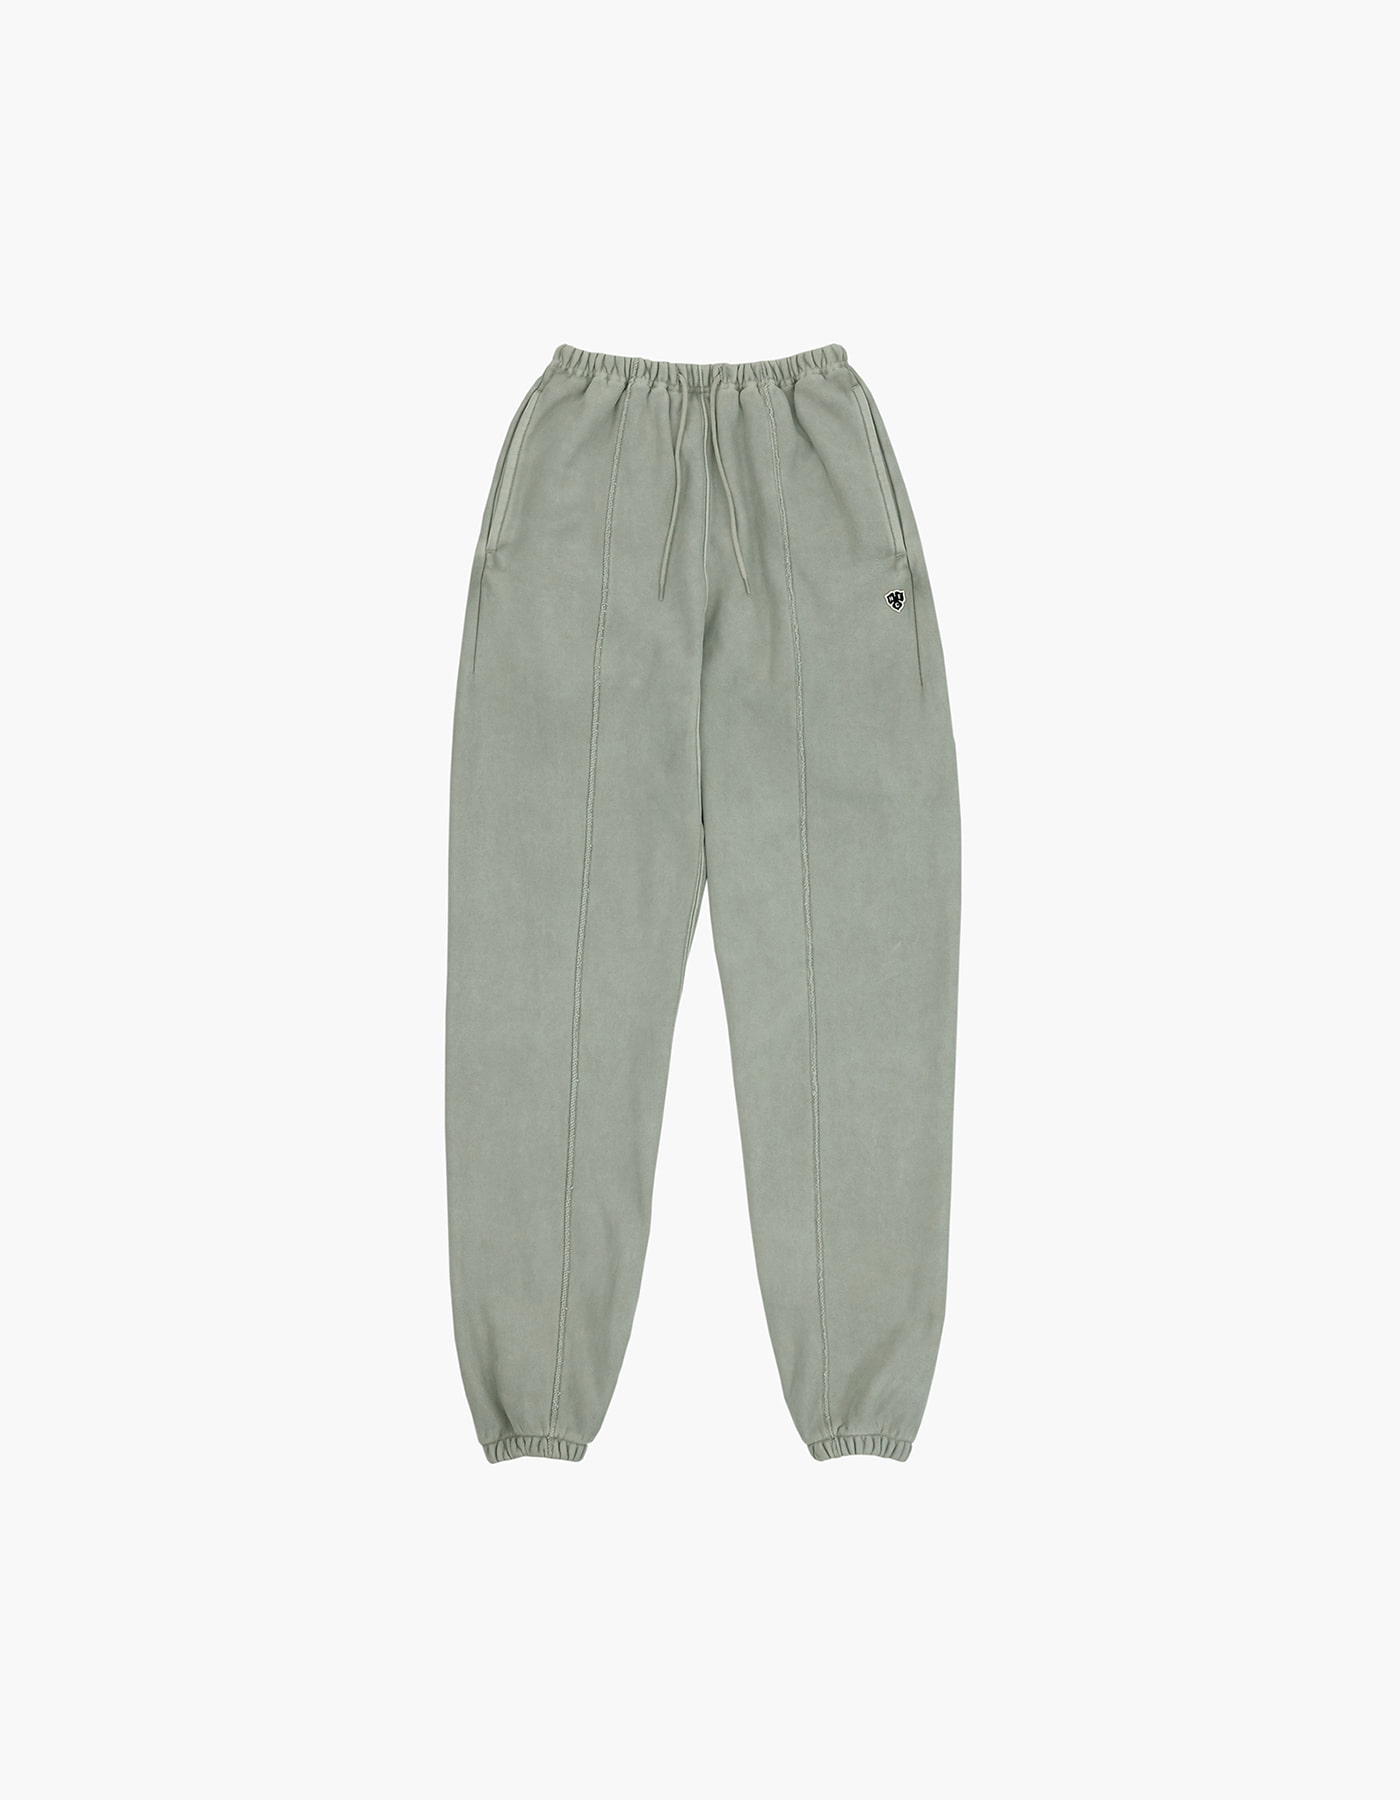 221 PIGMENT SWEATPANTS / JADE